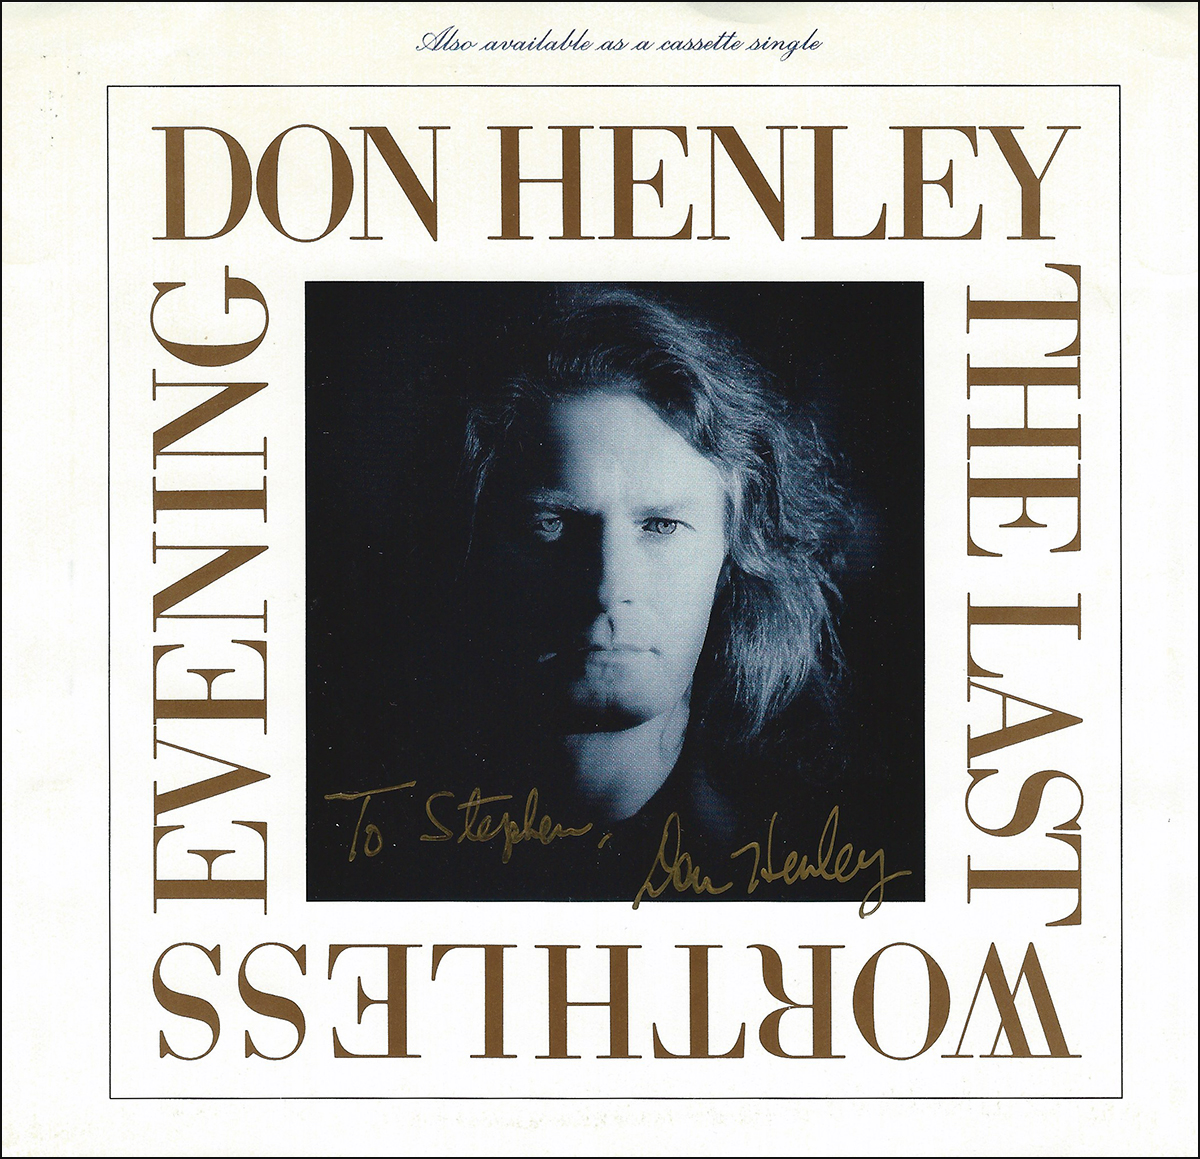 Don Henley 45rpm Sleeve - The Last Worthless Evening